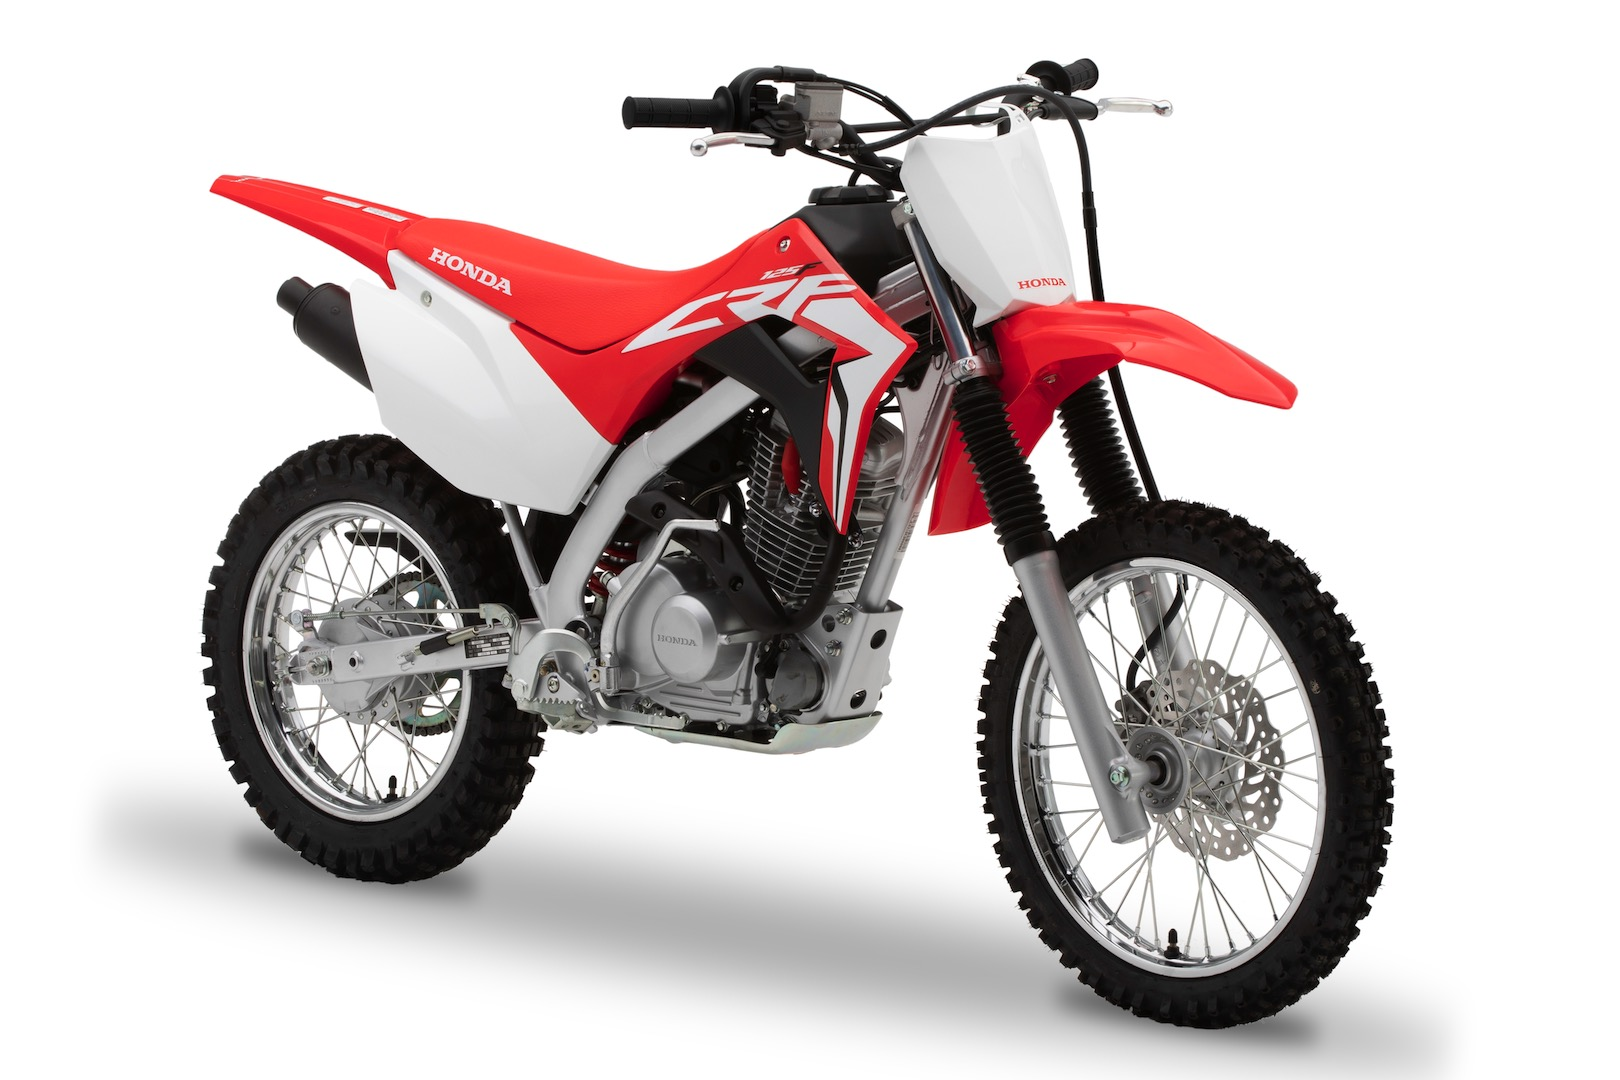 Wondrous 2019 Honda Crf125F And Crf125F Big Wheel First Look 8 Fast Unemploymentrelief Wooden Chair Designs For Living Room Unemploymentrelieforg